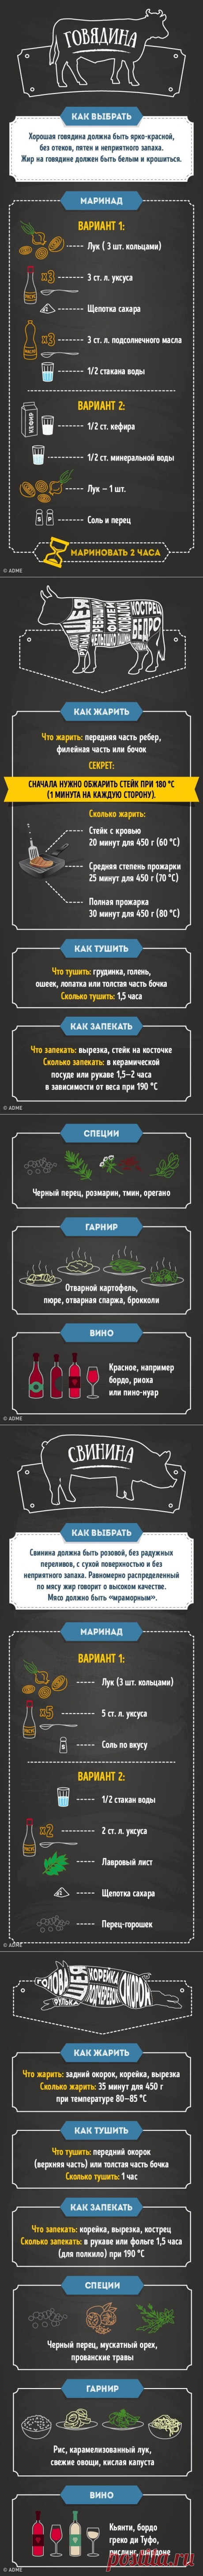 The guide on preparation of ideal meat in house conditions